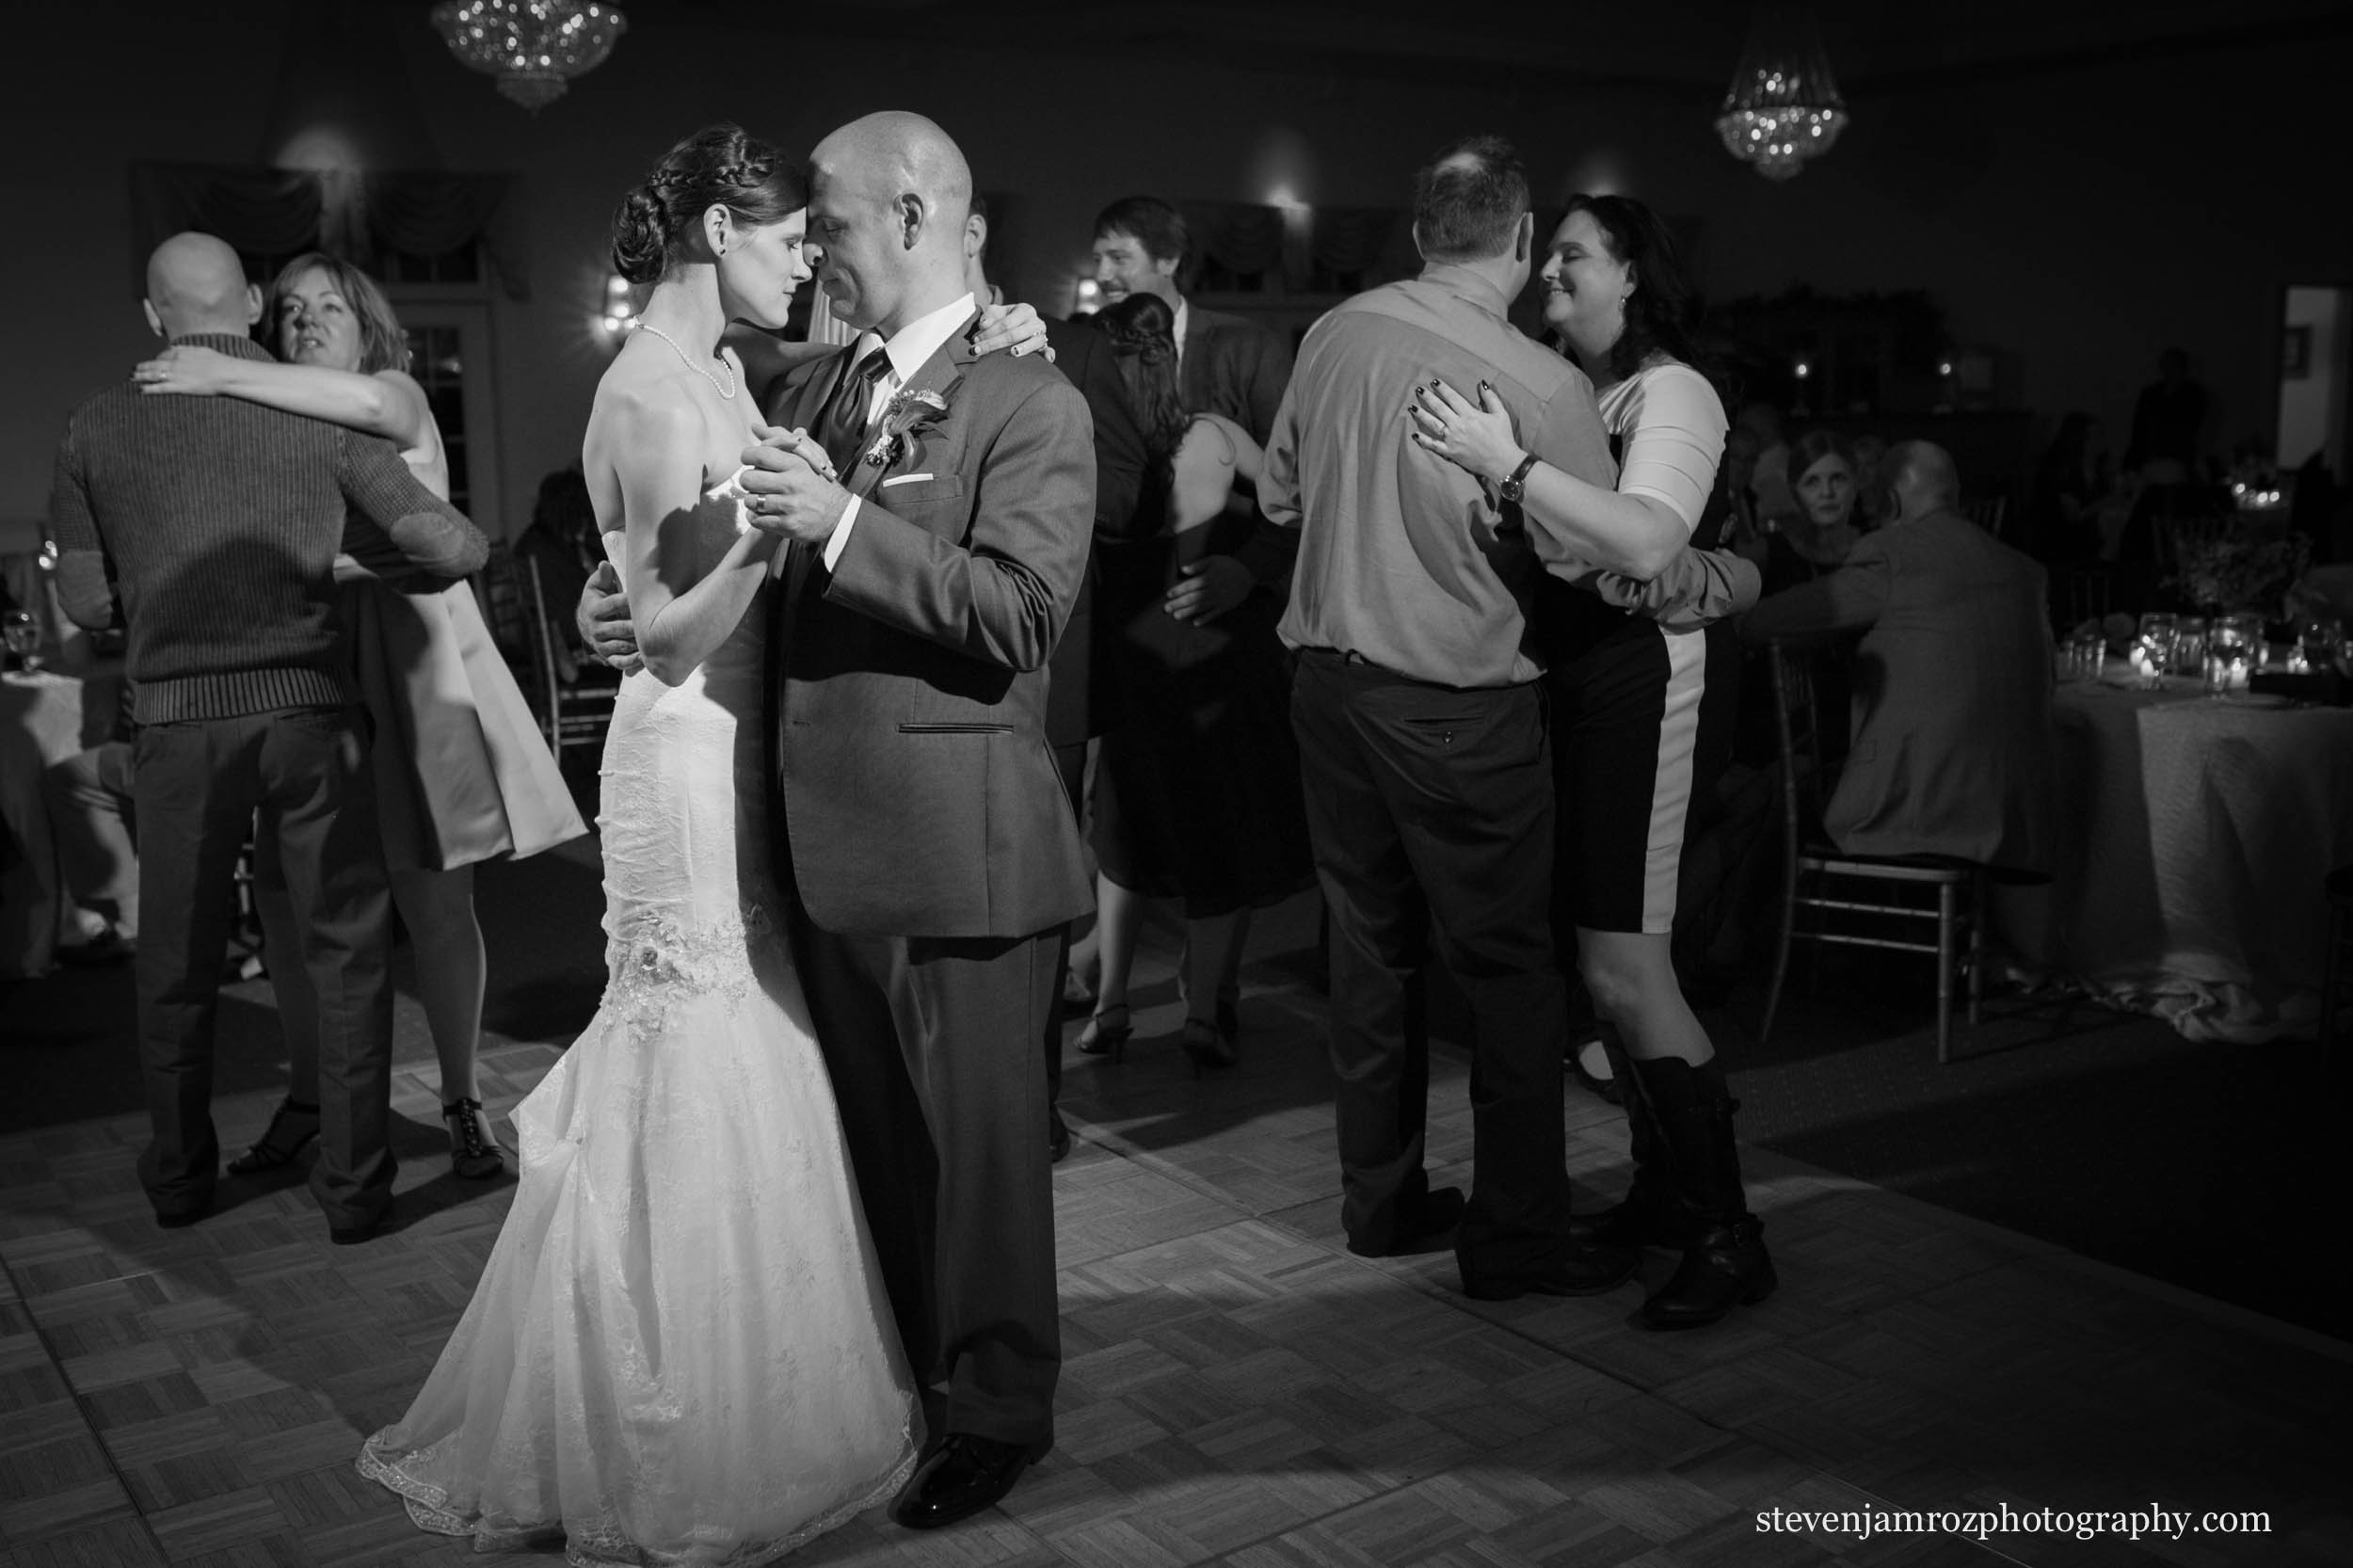 wedding-dance-bride-groom-hudson-manor-photography-0952.jpg